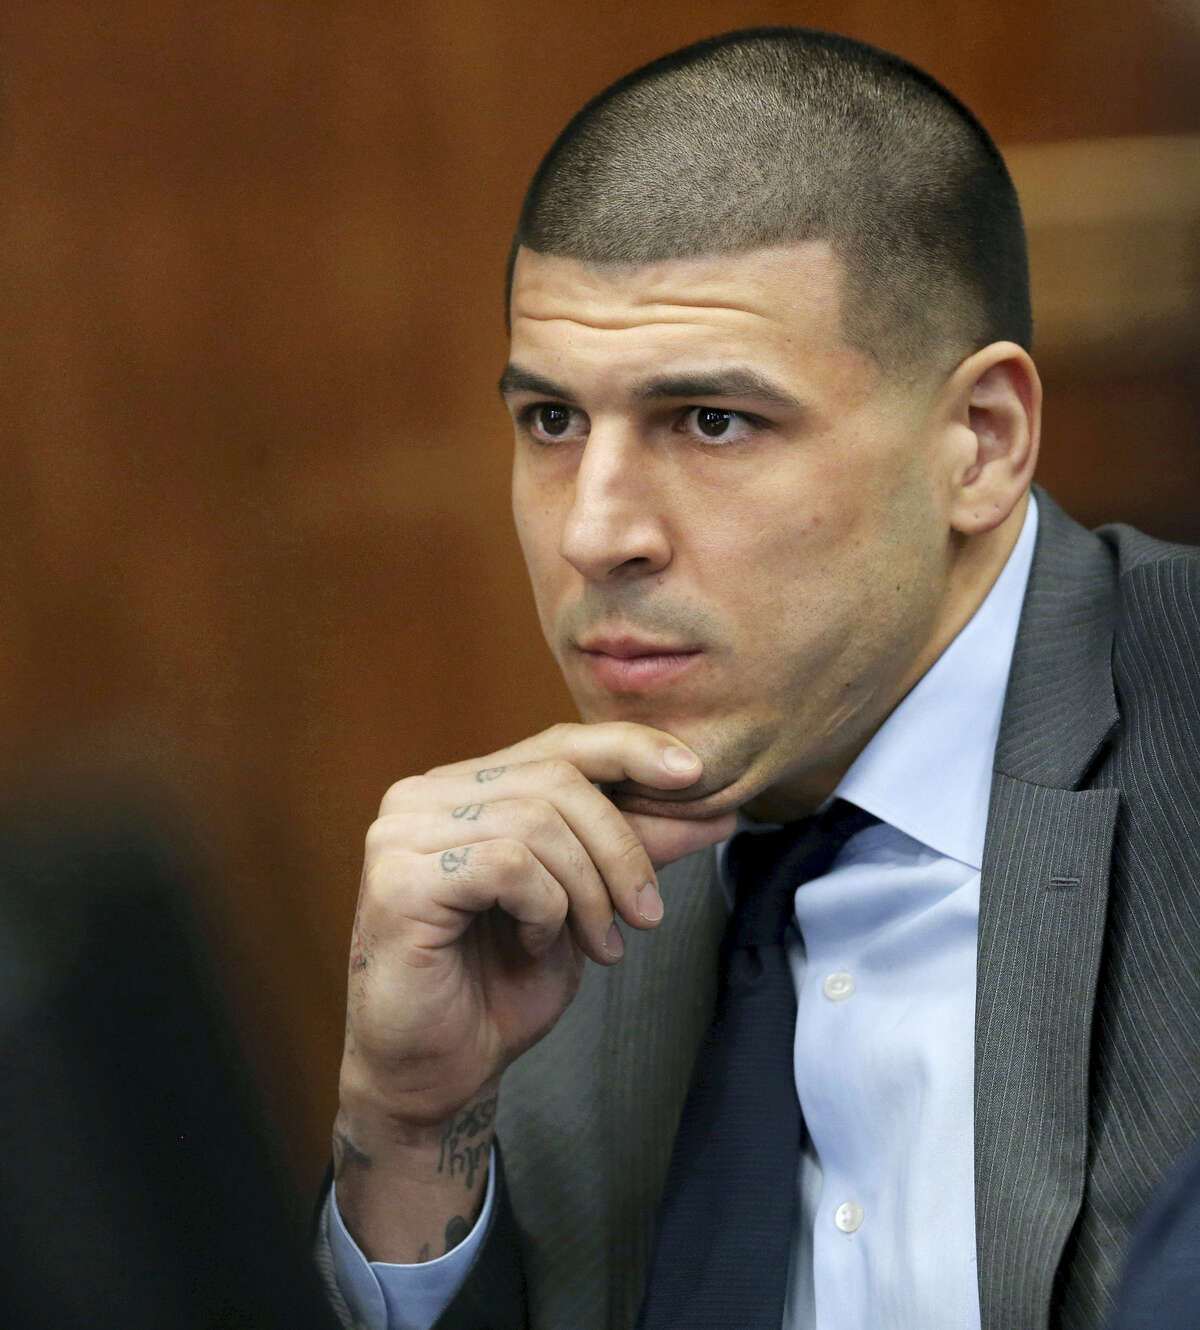 Former New England Patriots NFL football player Aaron Hernandez appears during a hearing at Suffolk Superior Court, Tuesday, Dec., 20, 2016.